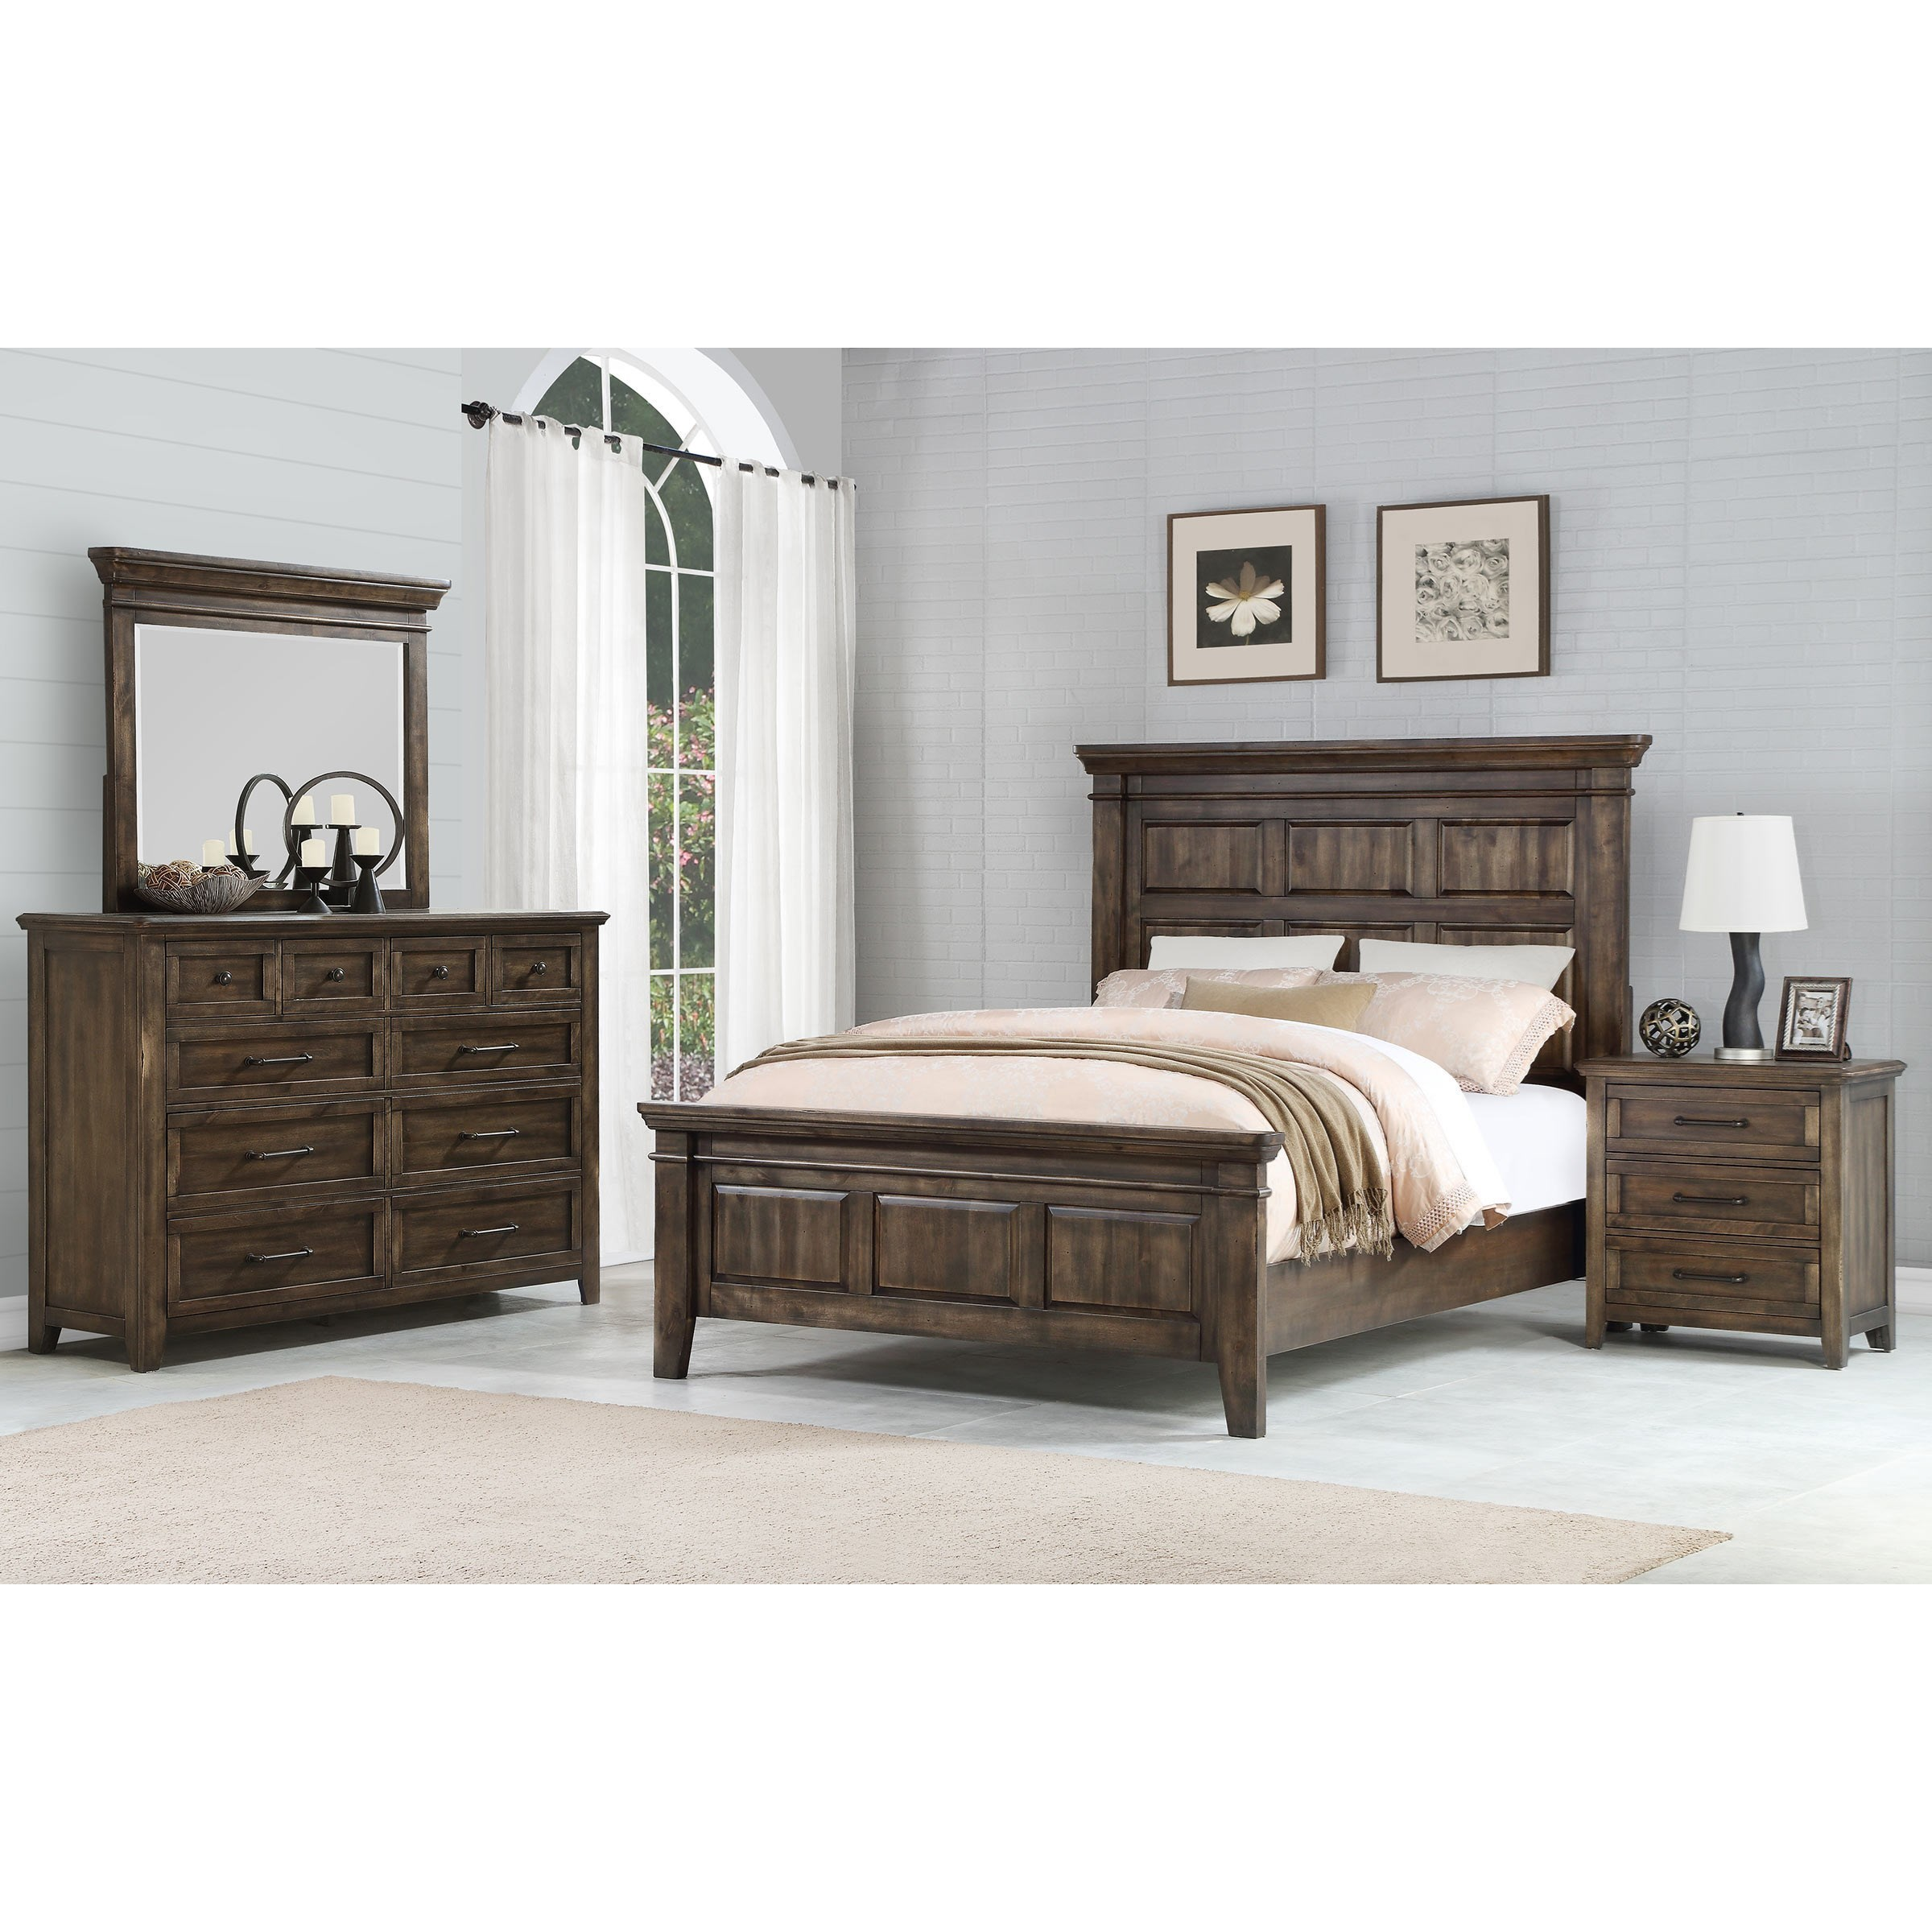 Bed Queen Daphne Queen Bed Room Group By Winners Only At Crowley Furniture Mattress